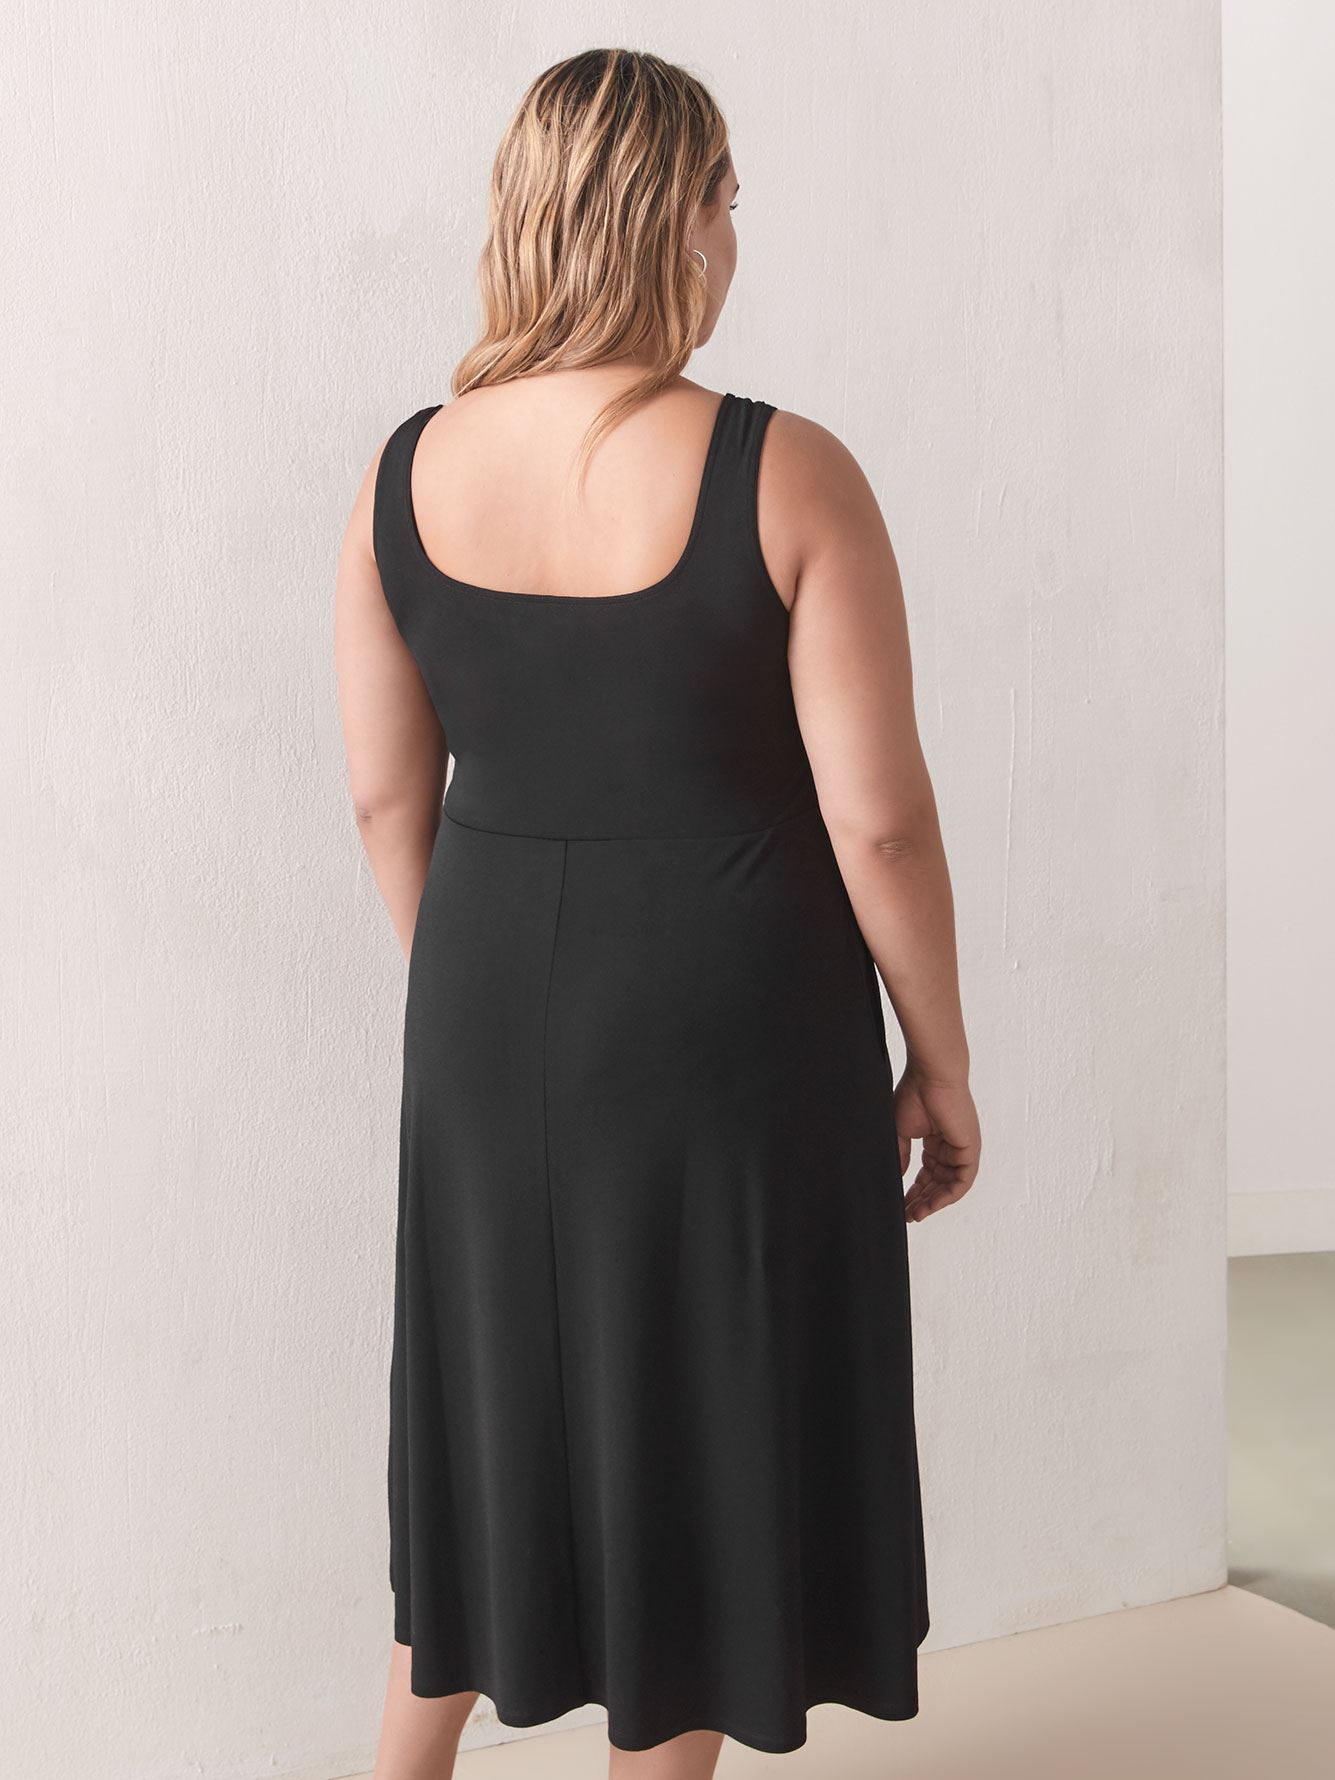 Square-Neck Fit and Flare Midi Dress - Addition Elle